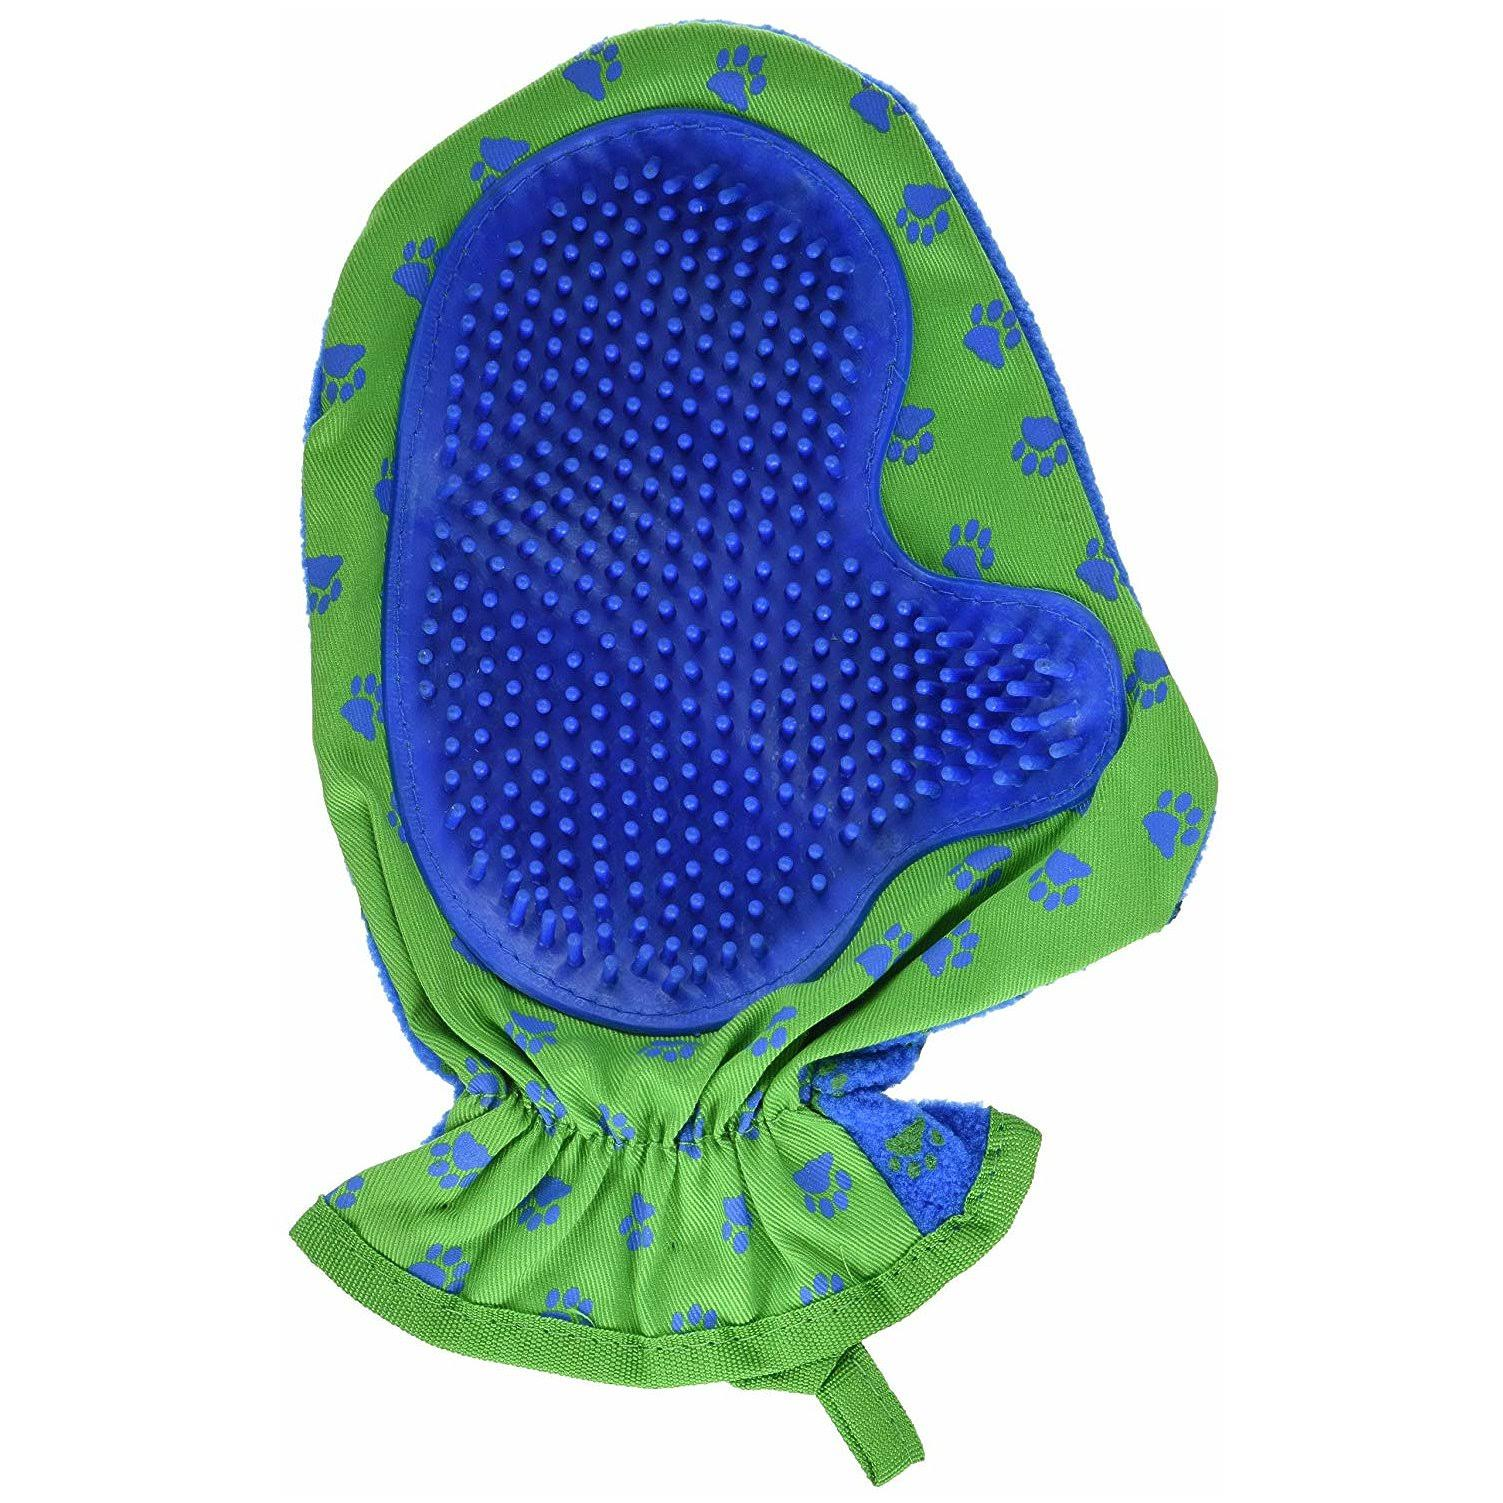 Items 4U 00525 Hair Removal Mitt - Blue/Green